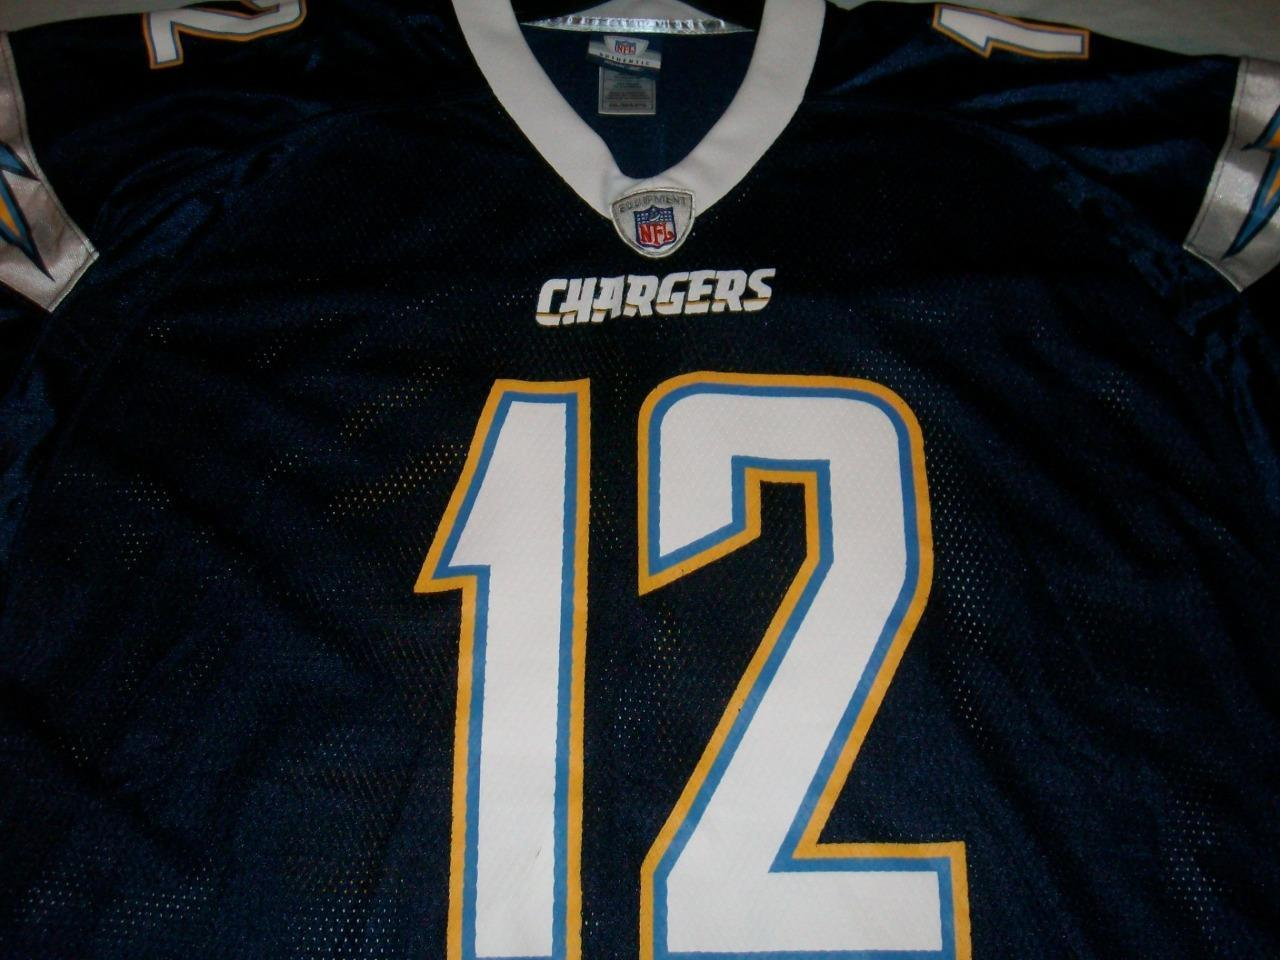 Henderson 12 San Diego Chargers NFL Vintage Blue Reebok Jersey Men's 2XL used